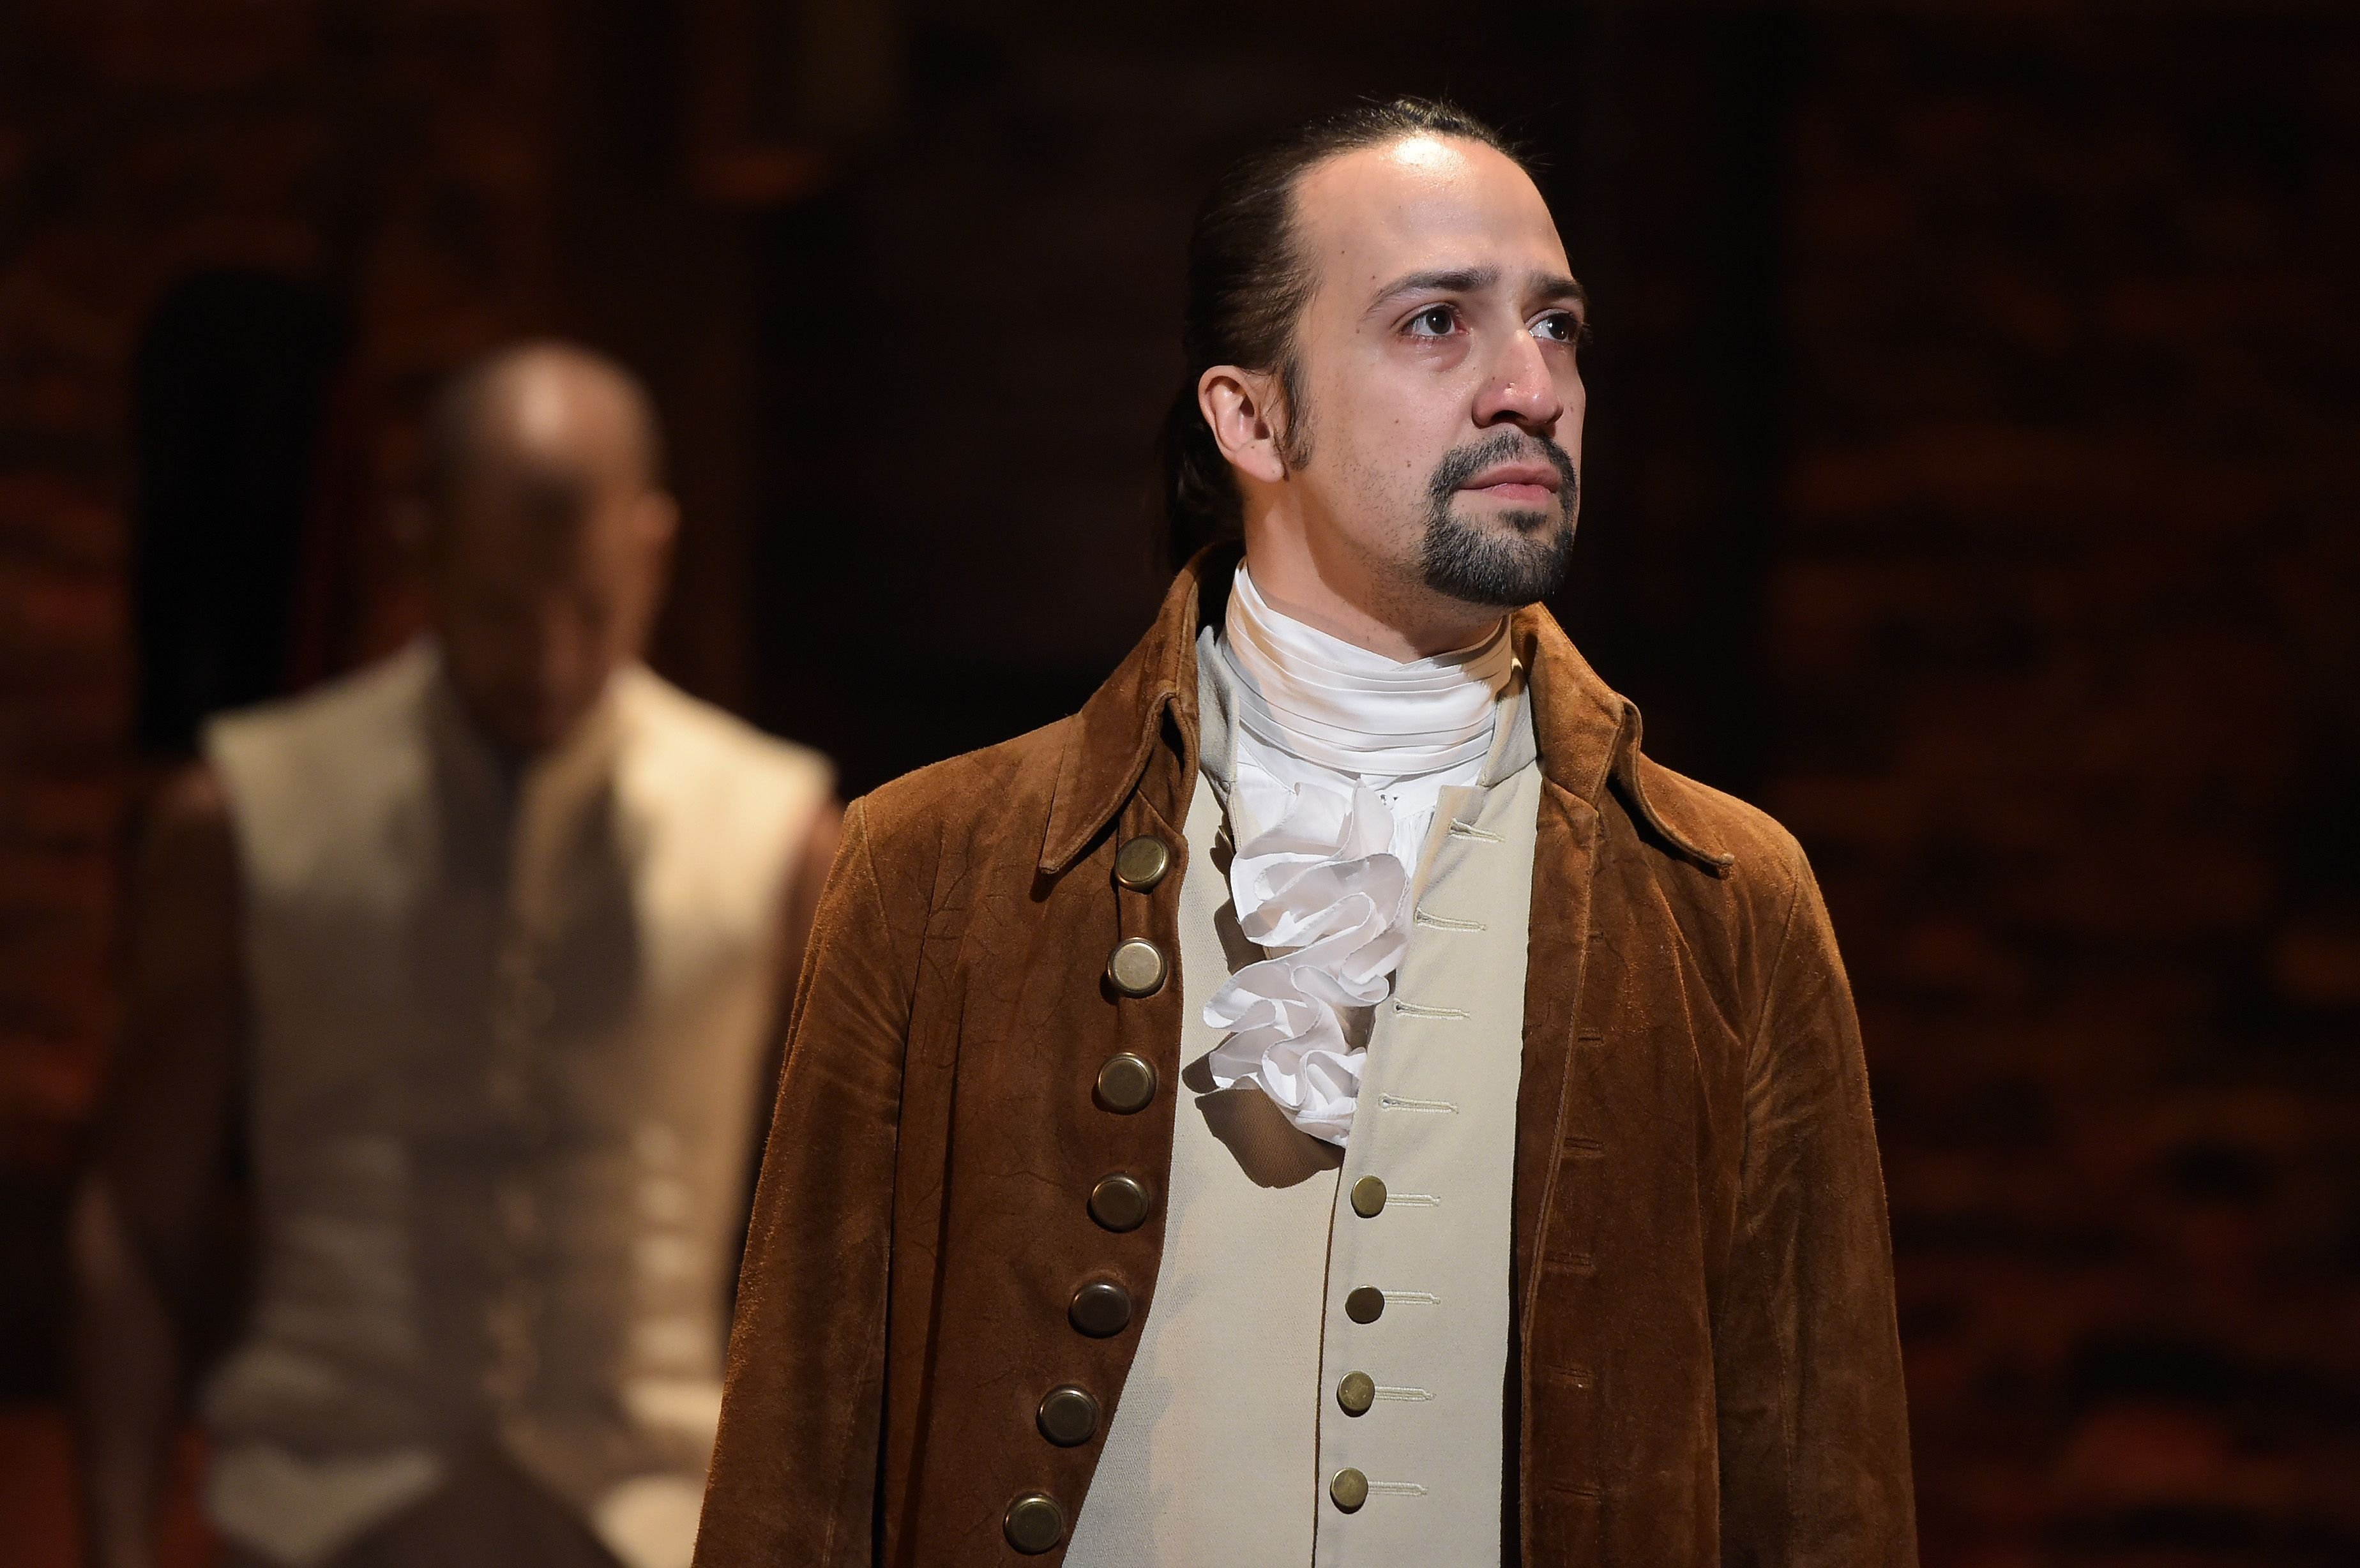 Lin-Manuel Miranda is seen on stage during Hamilton GRAMMY performance for The 58th GRAMMY Awards at Richard Rodgers Theater on 2016 in New York City/Photo:Getty Images